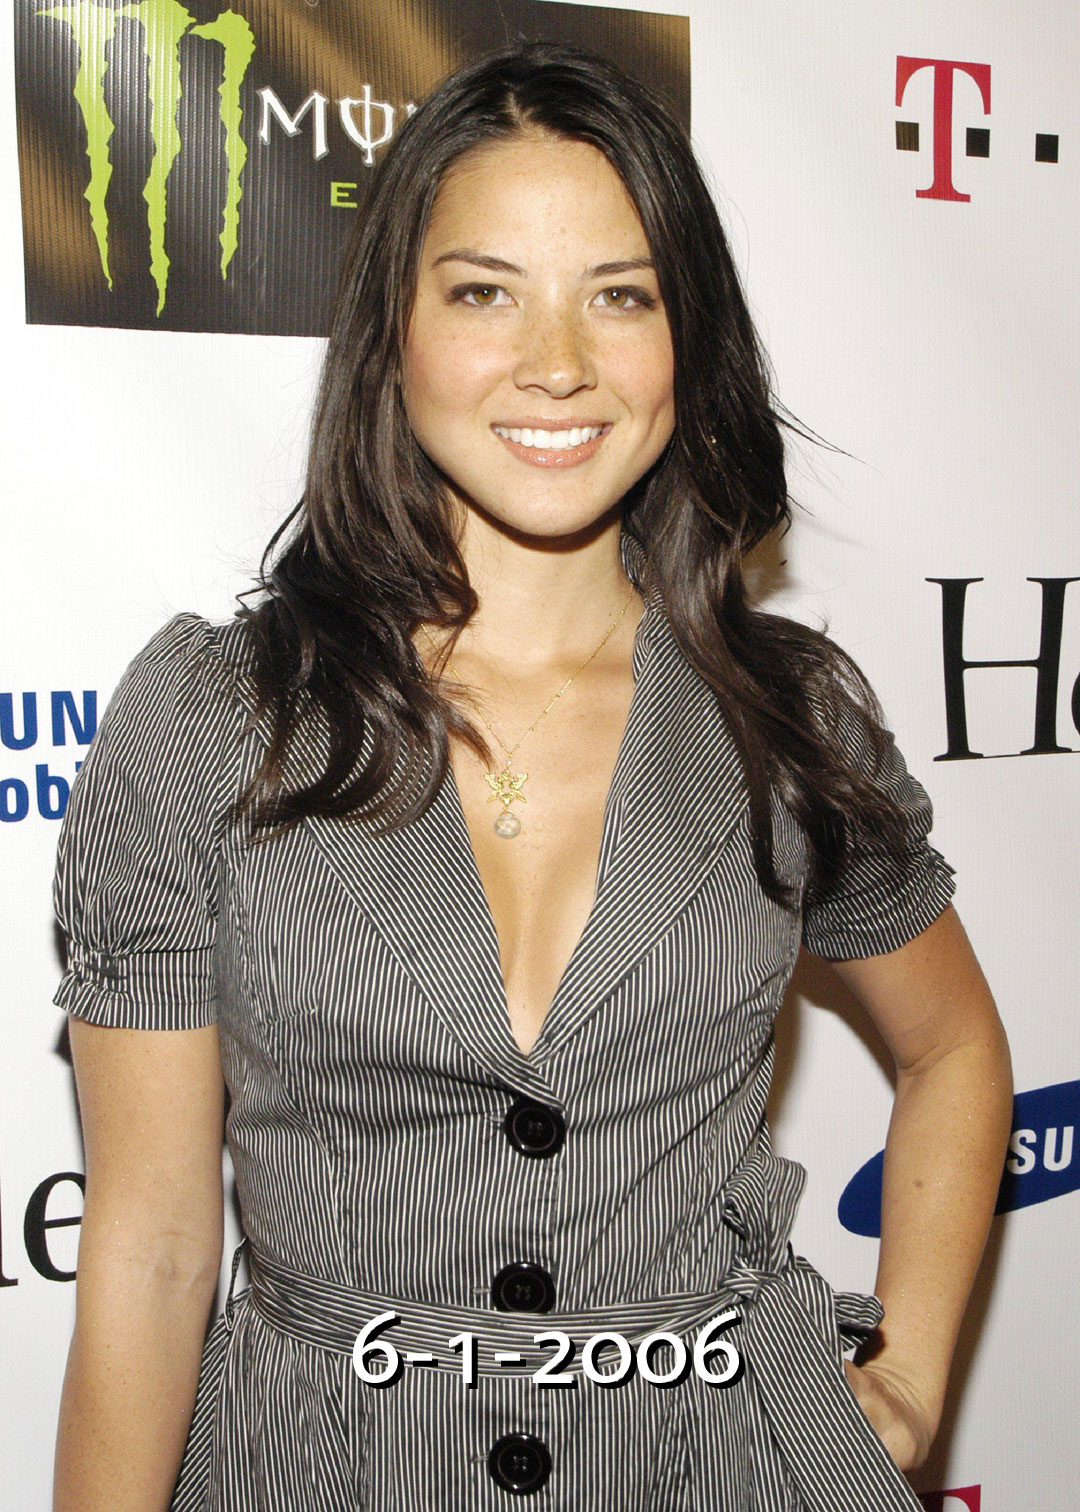 Cele Bitchy Olivia Munn Denies Plastic Surgery Fillers Your Face Changes Because Of Makeup